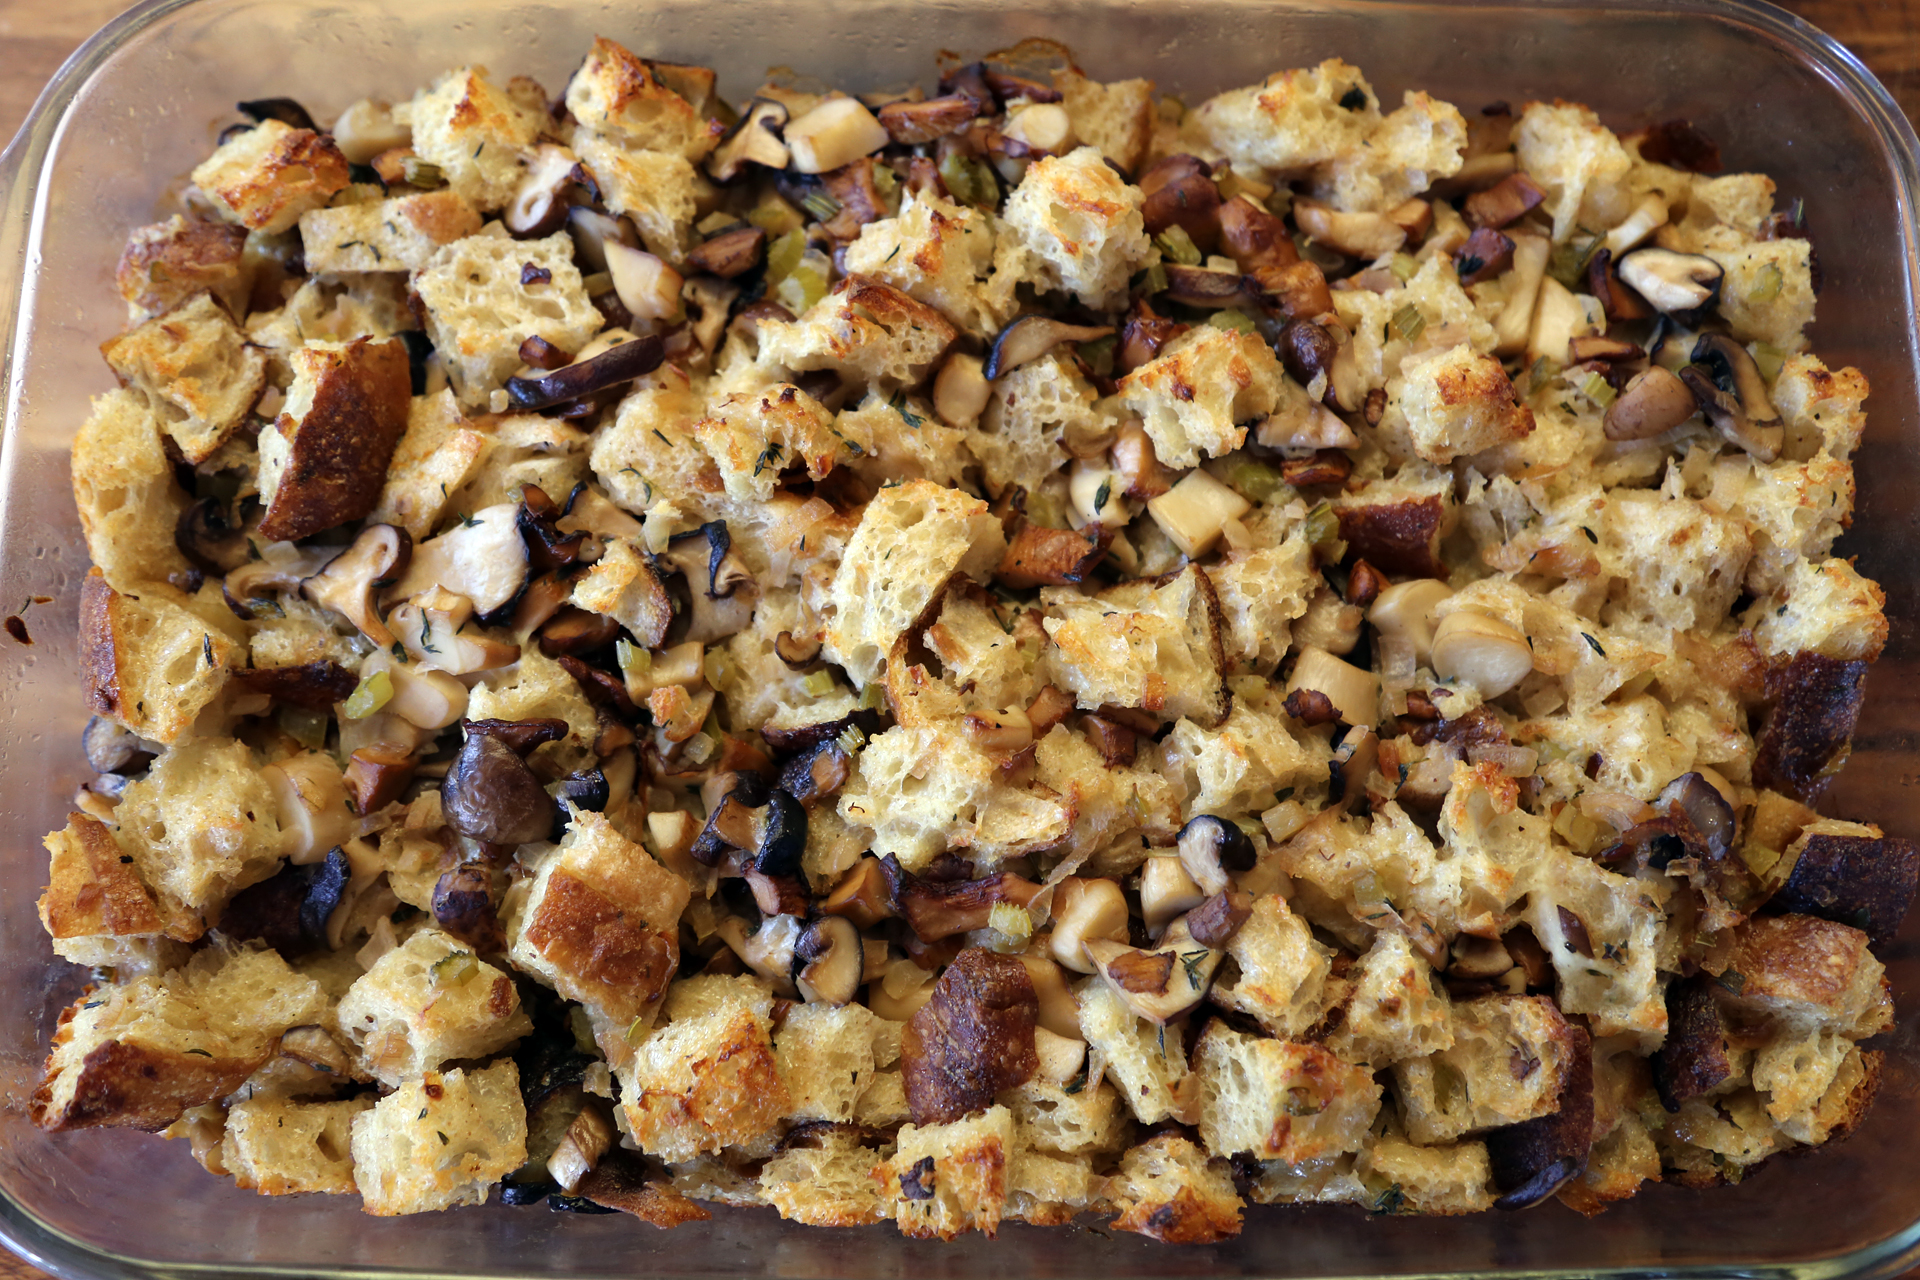 Wild Mushroom, Shallot, and Sourdough Stuffing with Herbs